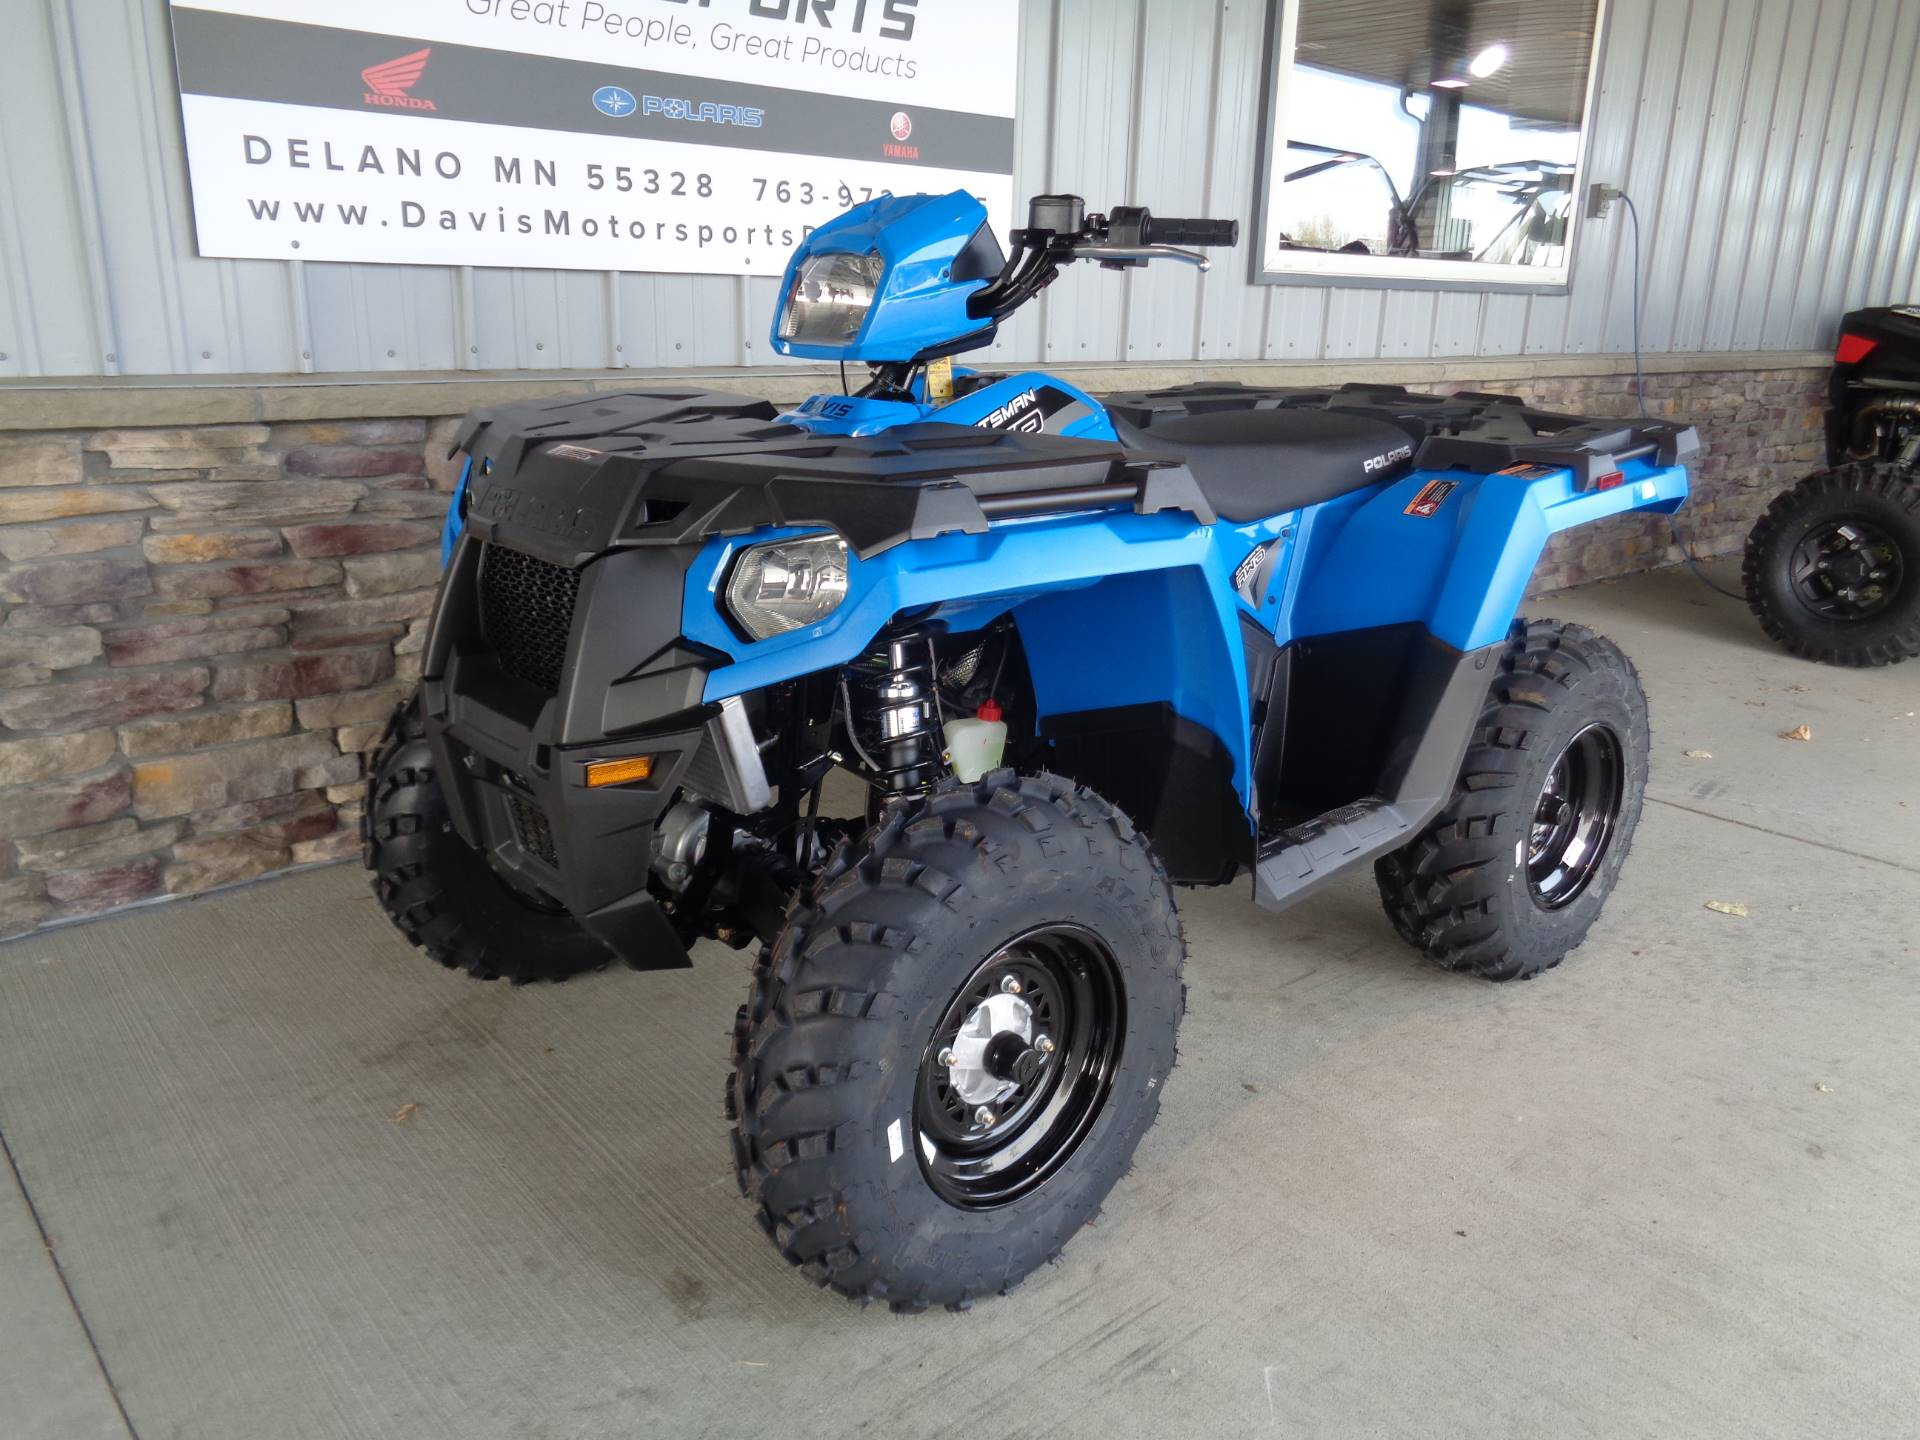 2019 Polaris Sportsman 570 EPS in Delano, Minnesota - Photo 4